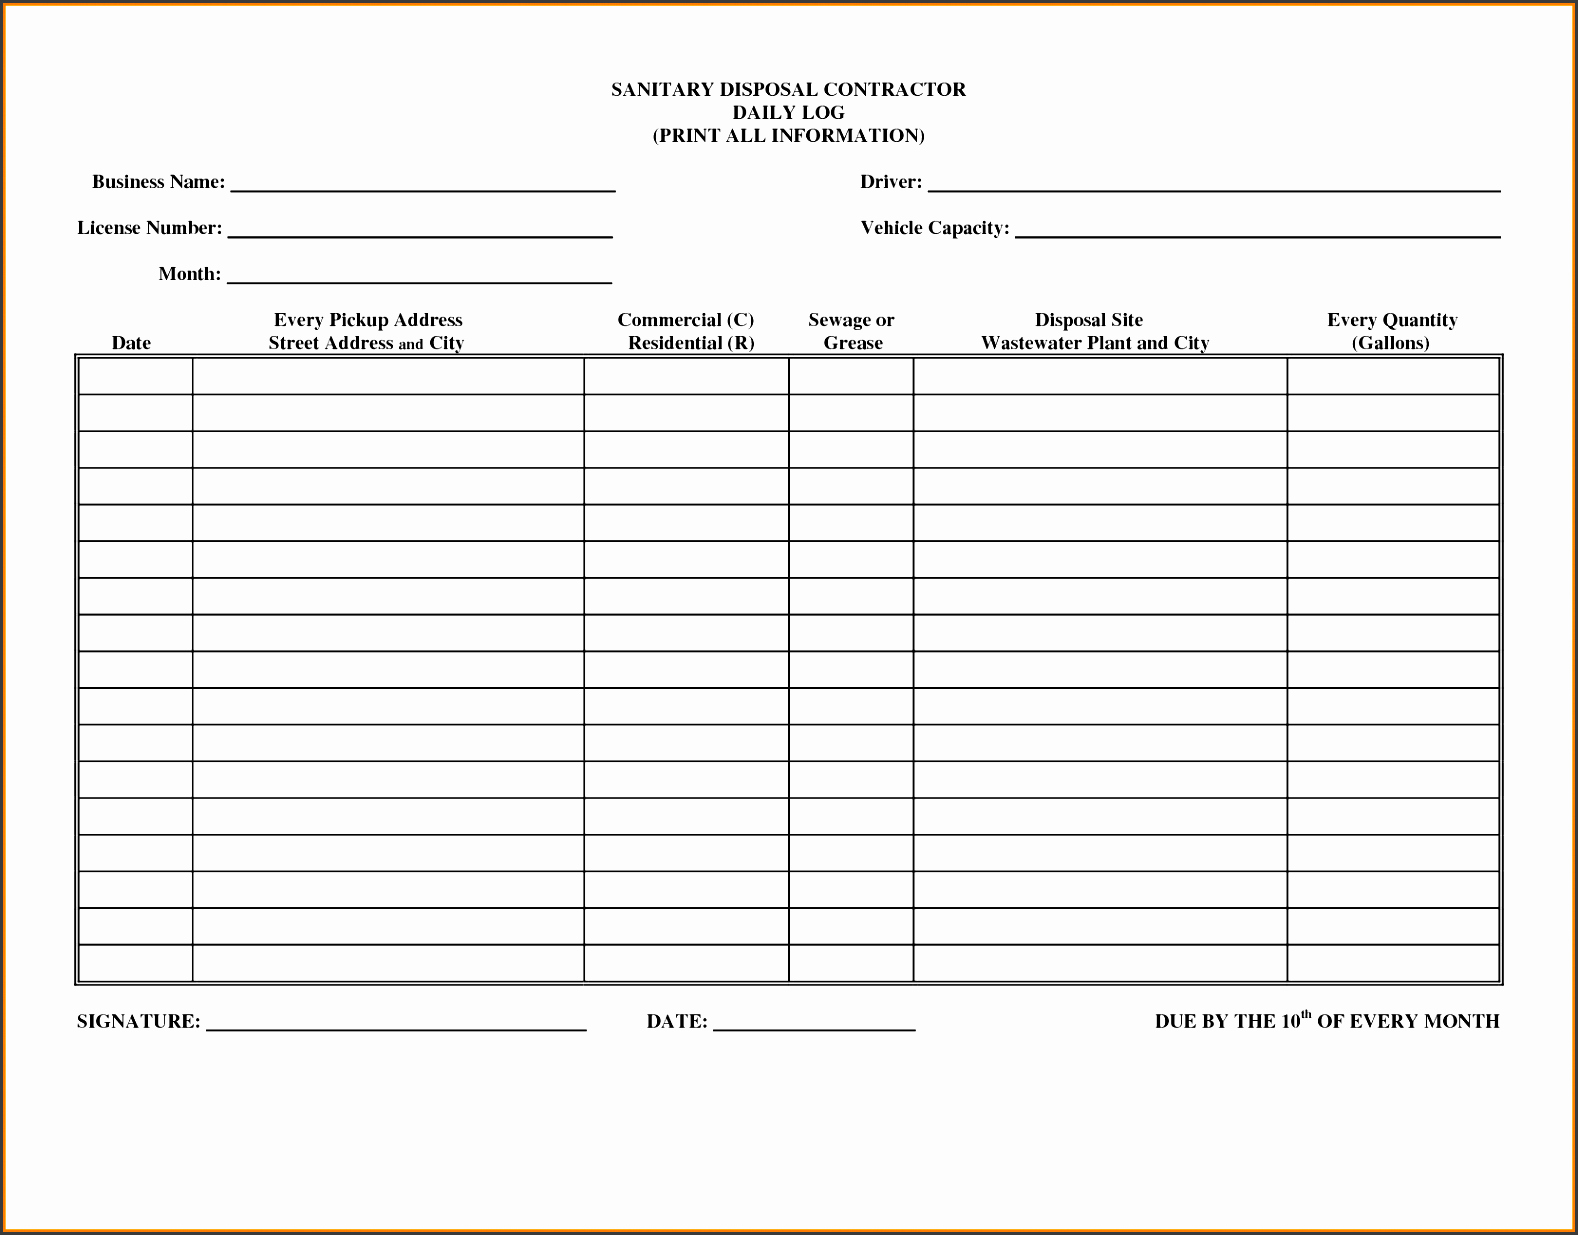 Work Log Sheet Template Excel Beautiful 9 Editable Daily Work Log Template Sampletemplatess